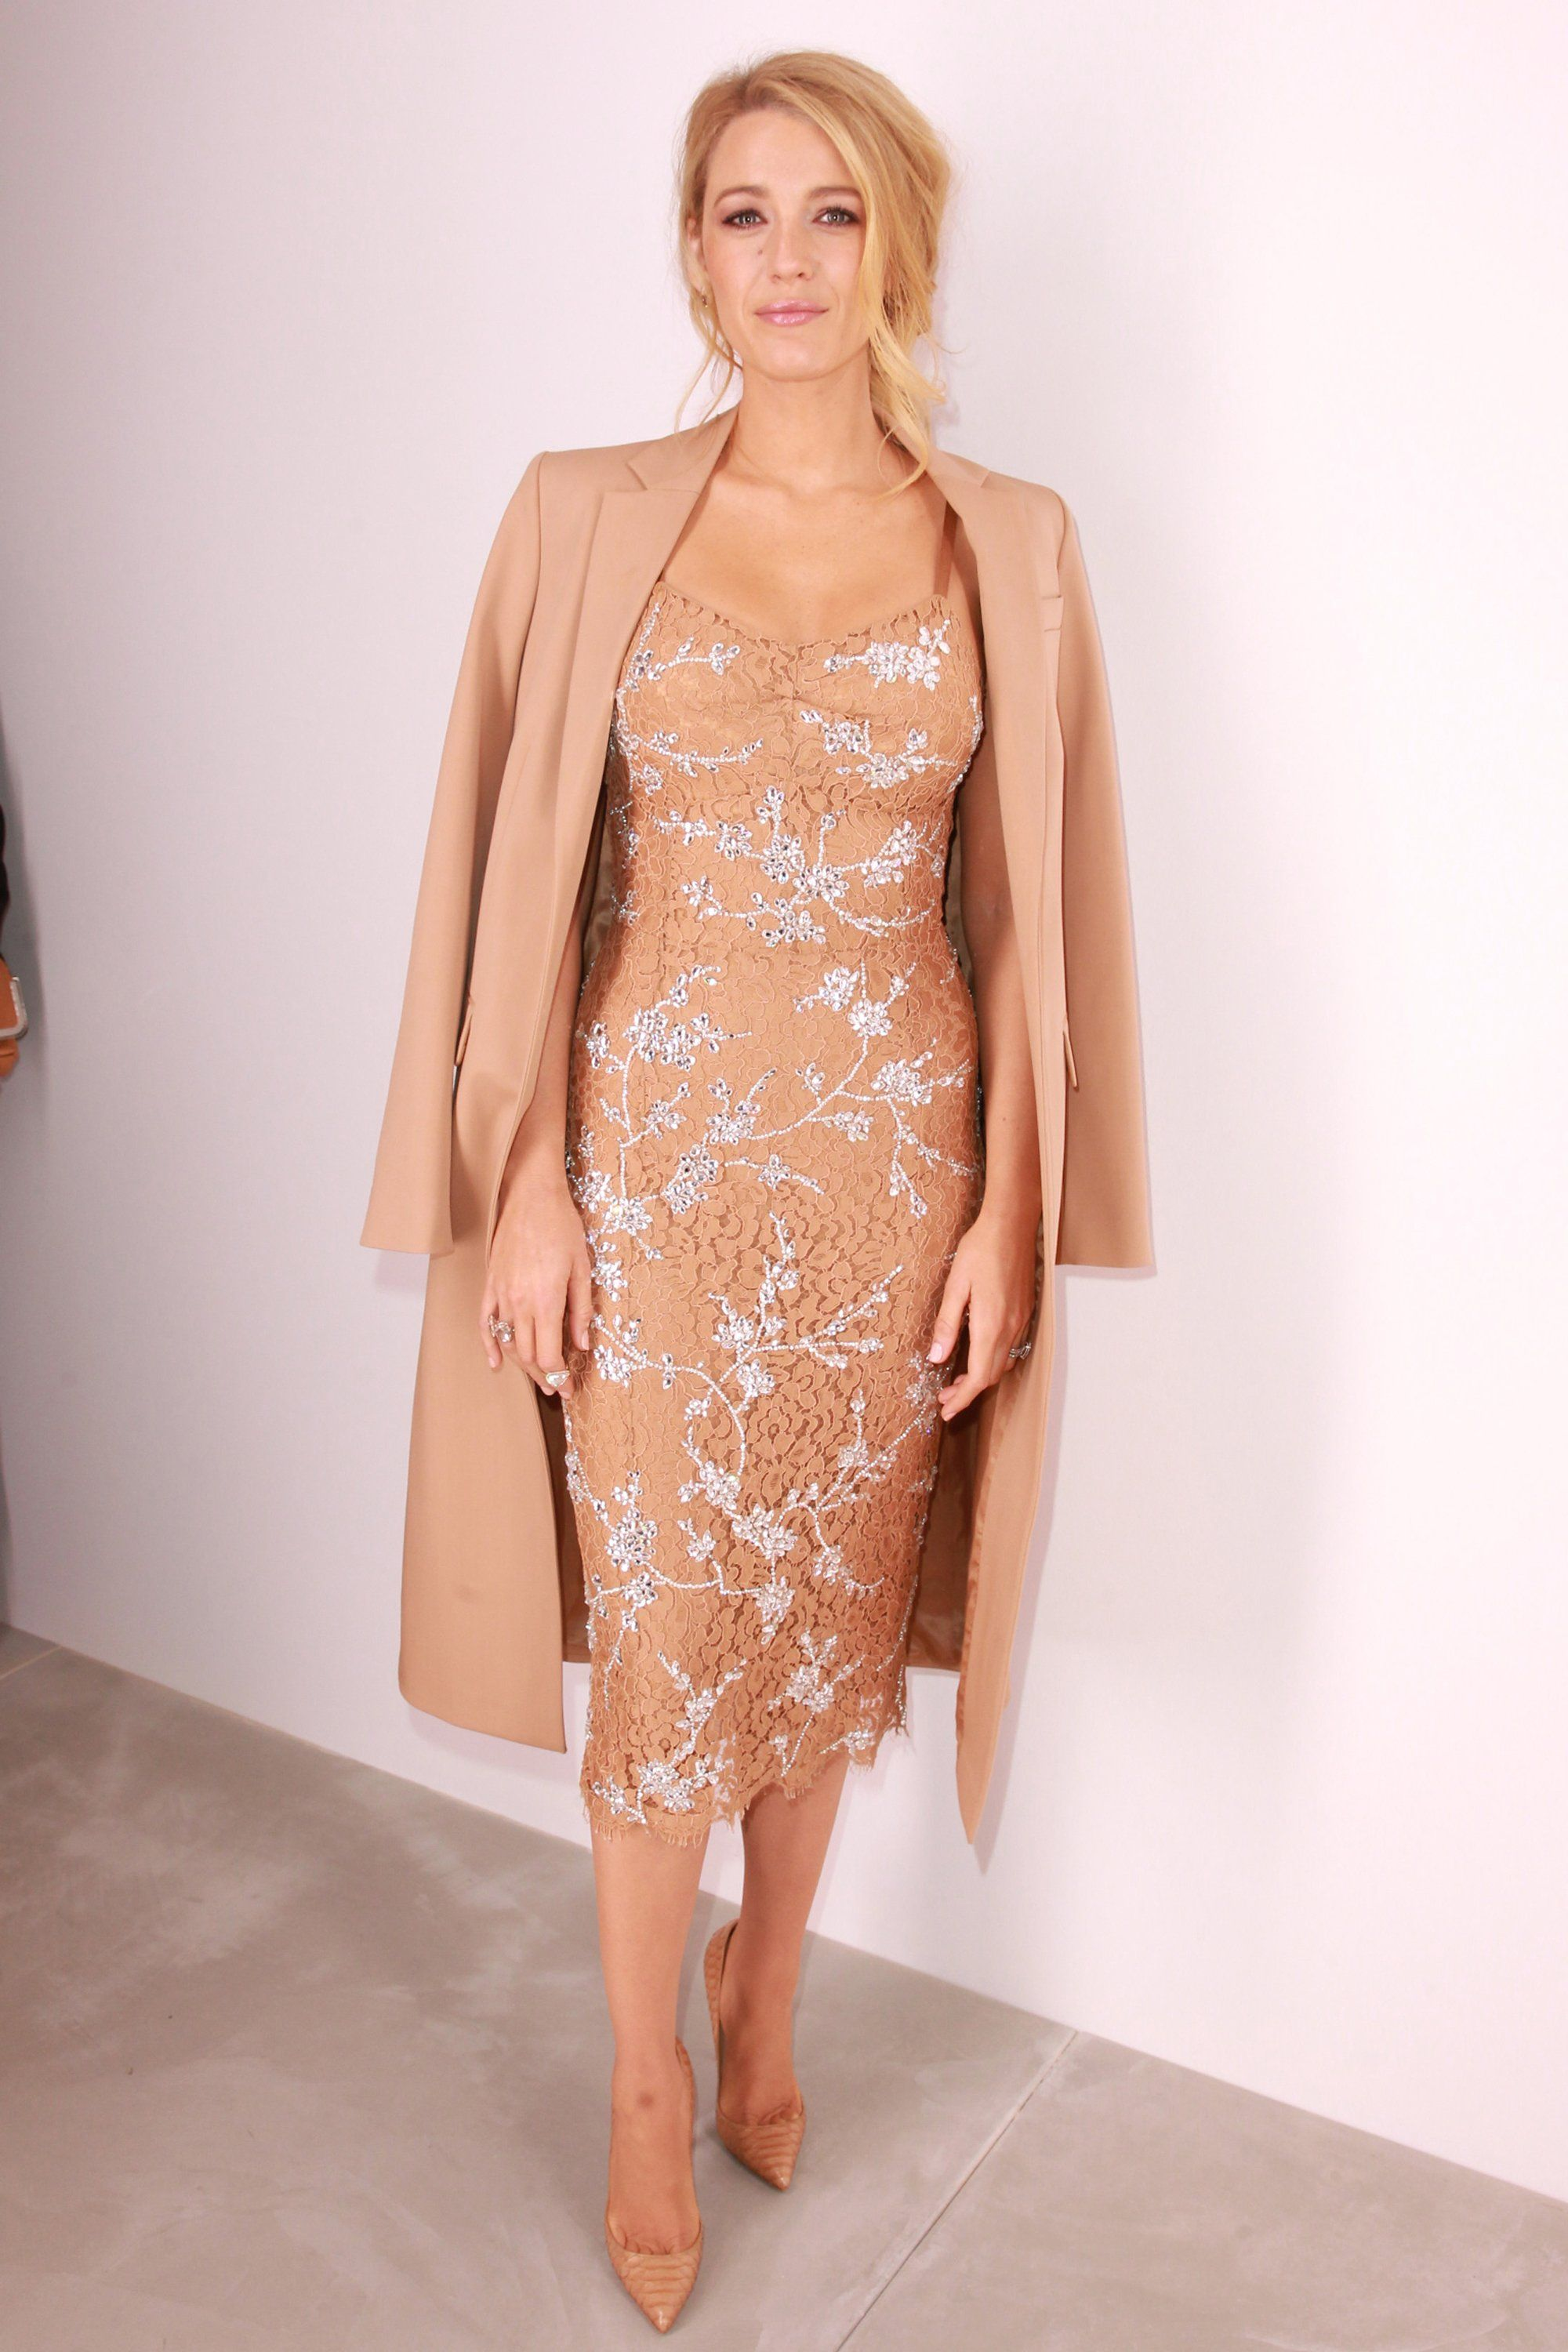 Blake Lively Returns to the Front Row at New York Fashion Week Styl  Celebrit b32523b6e2